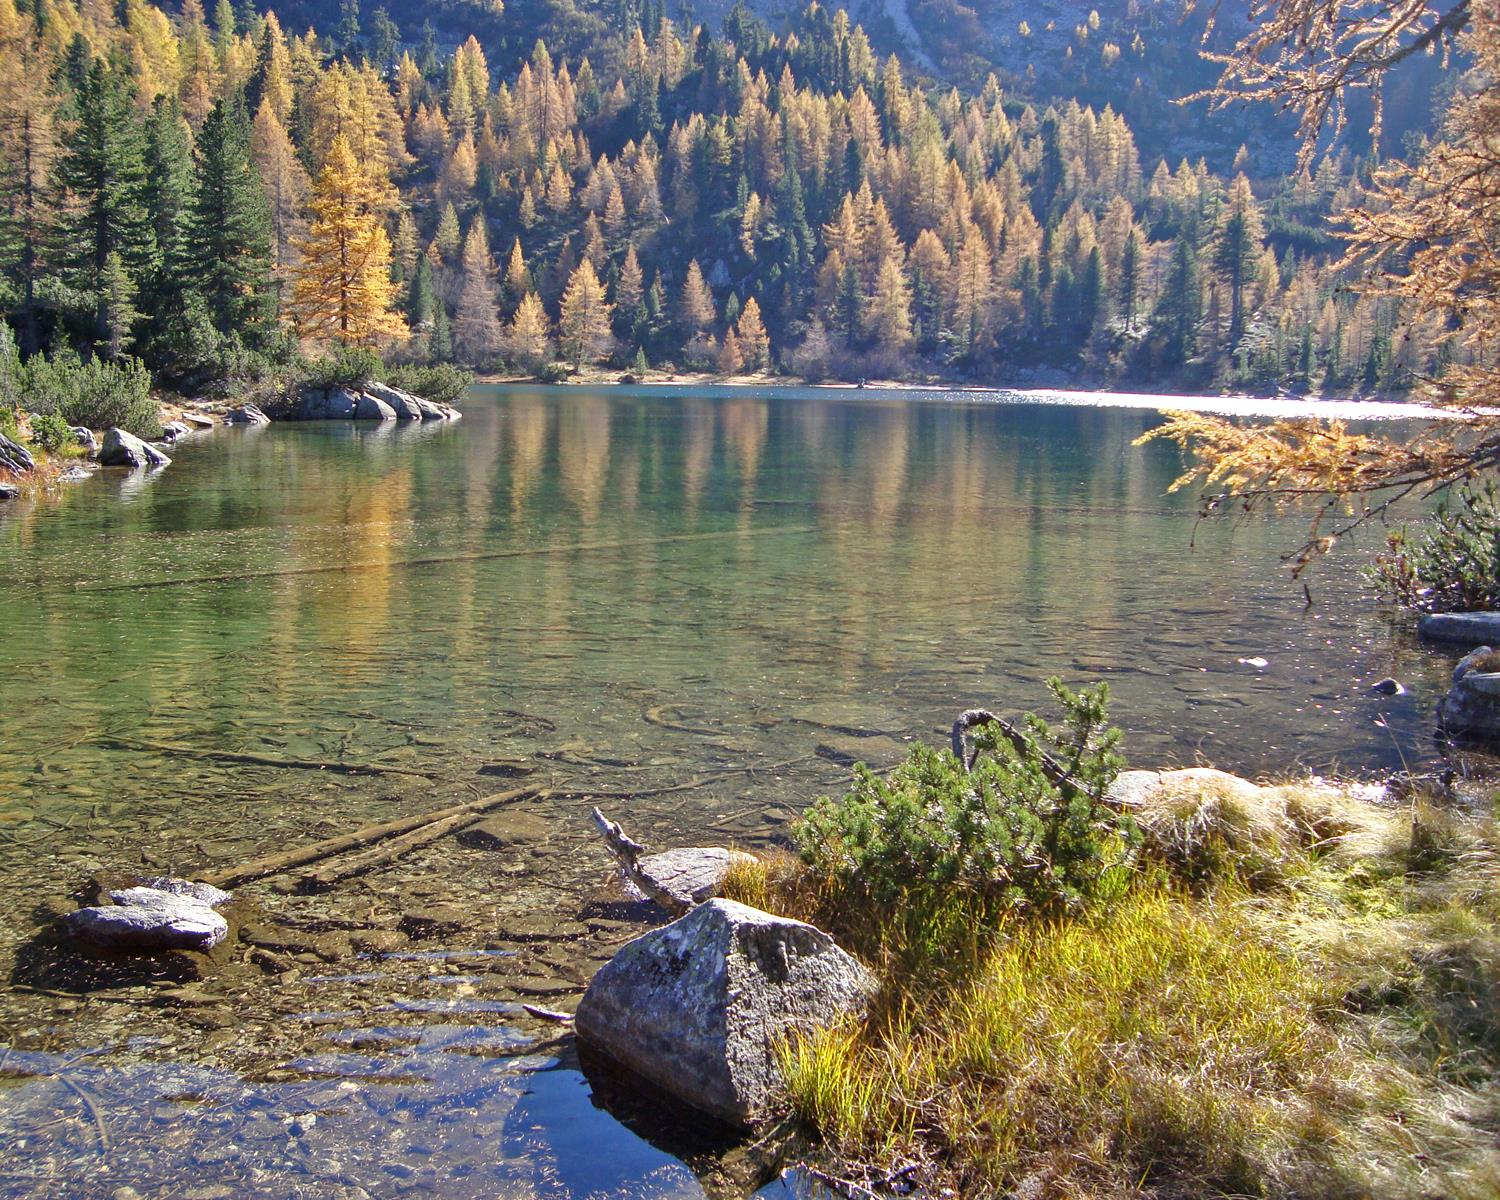 From Pfulters to the Puntleider See lake